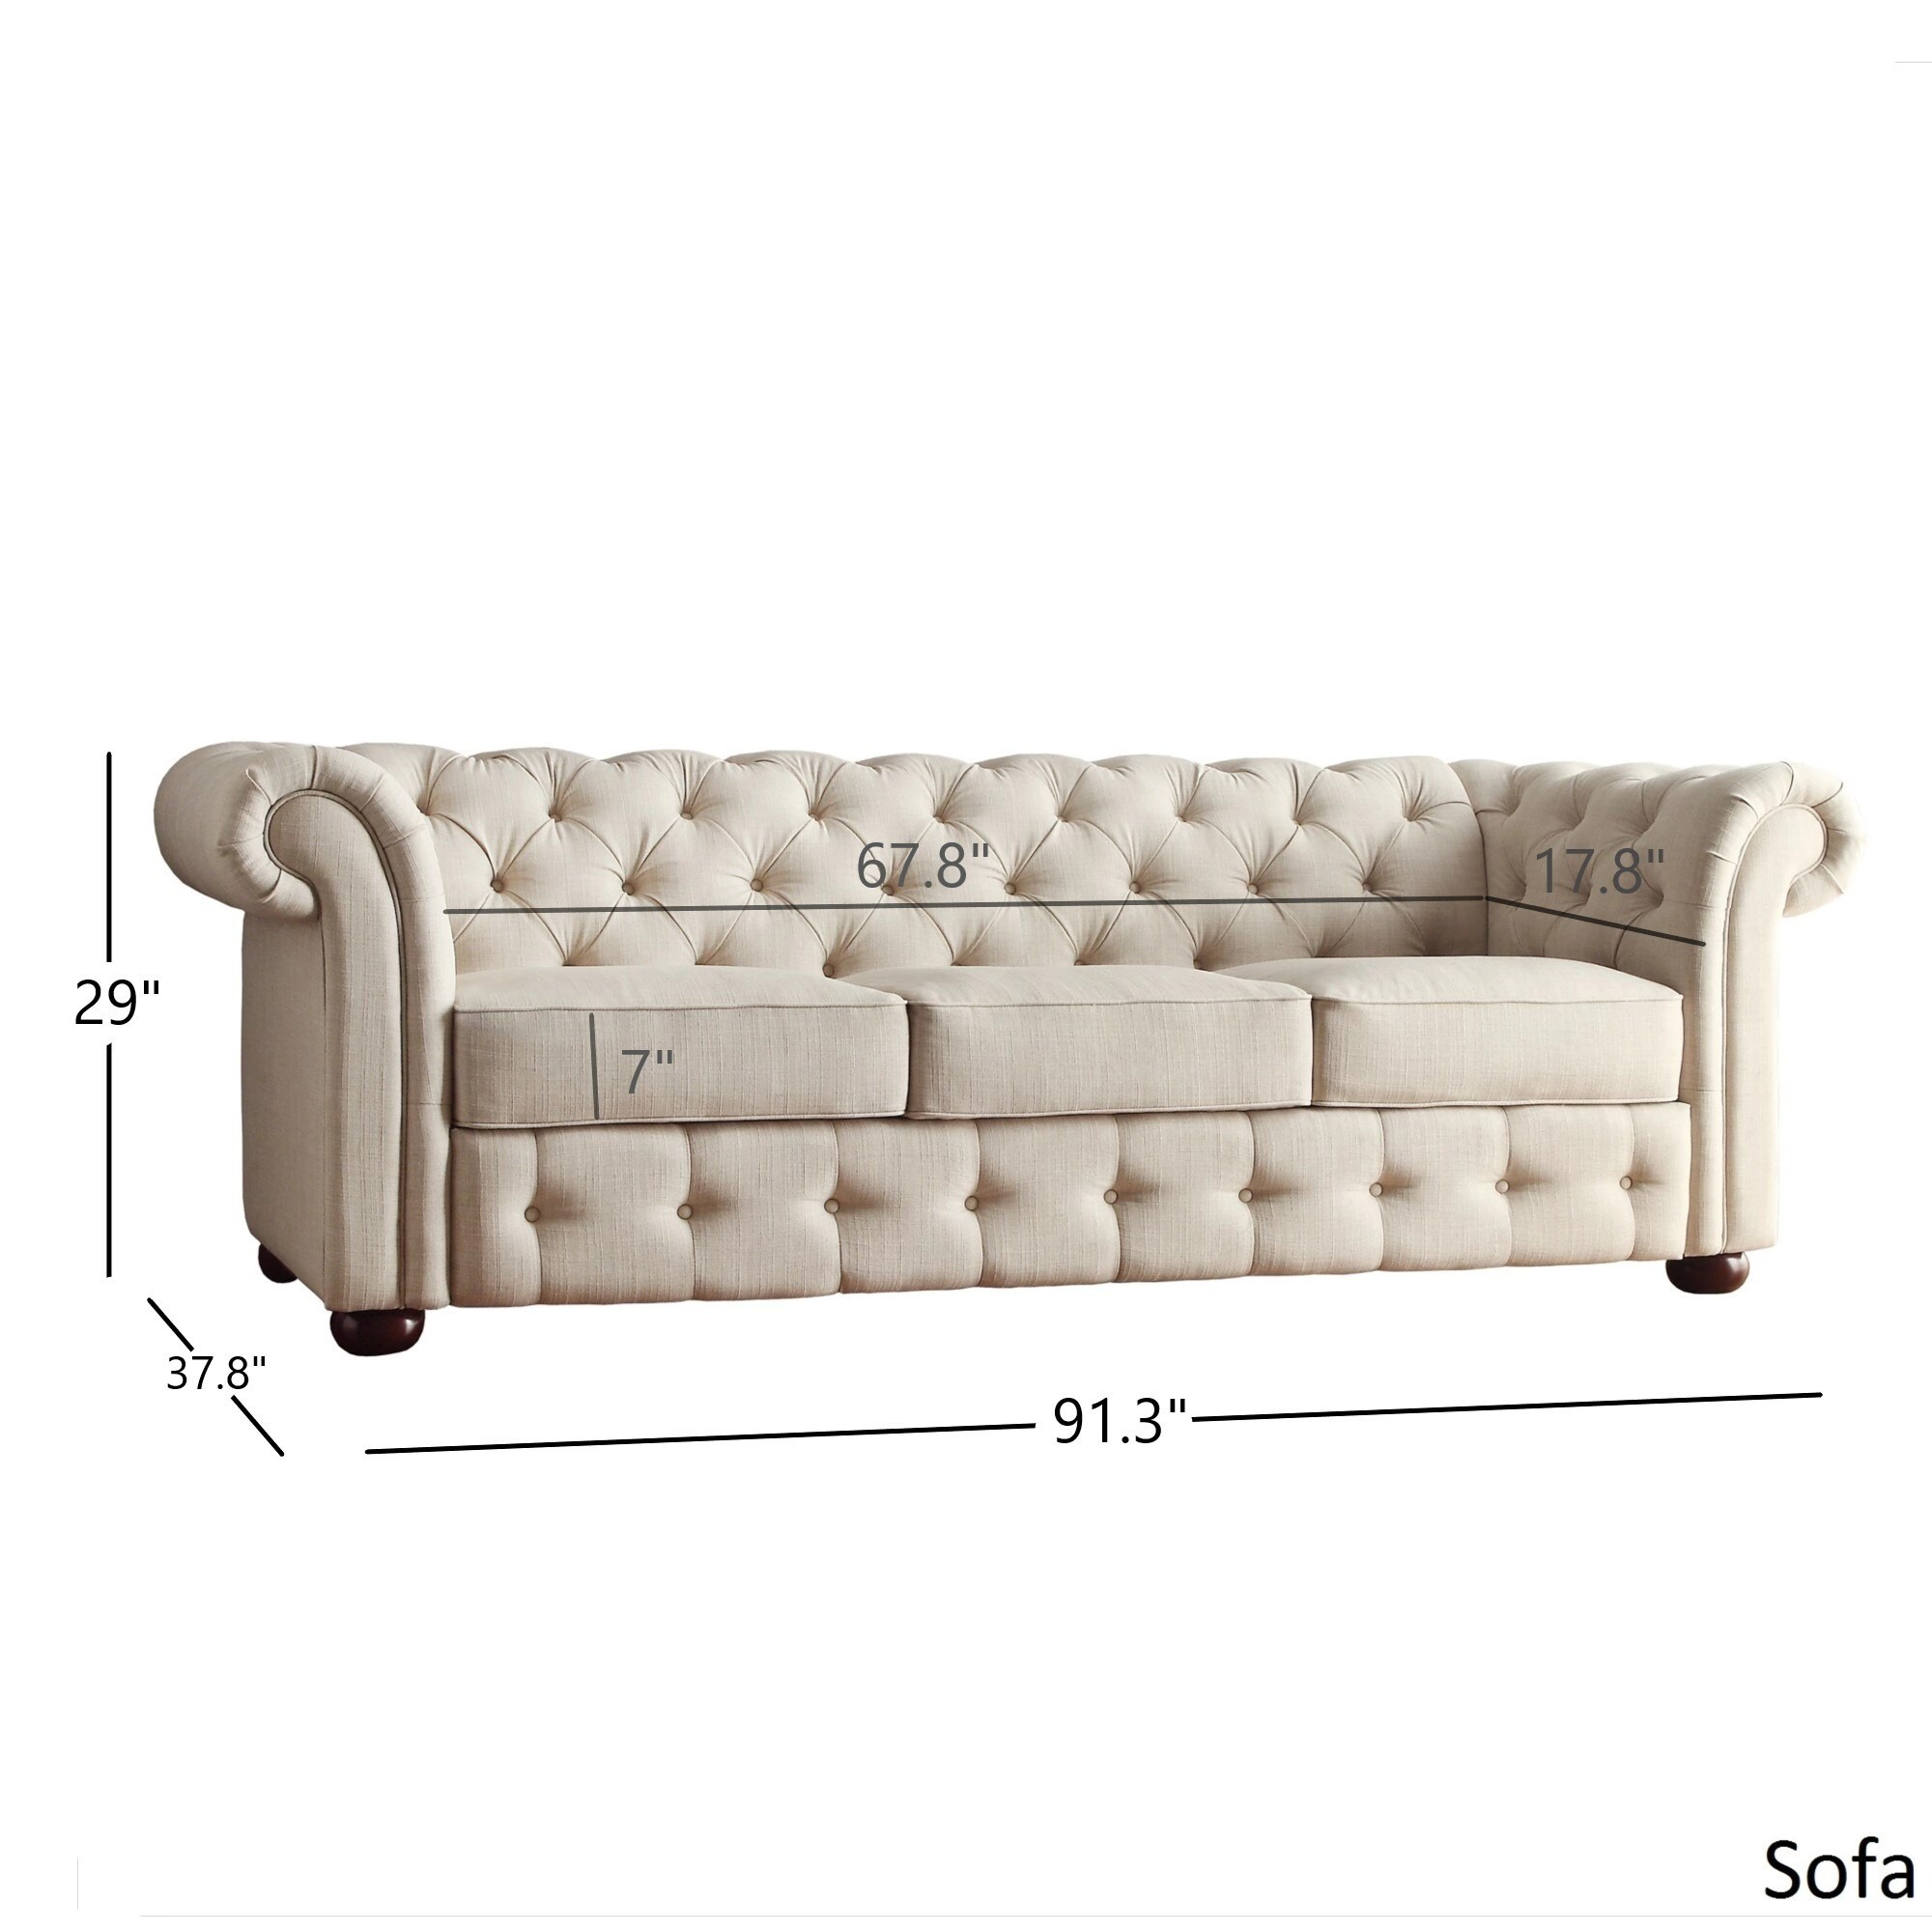 Sofa Beige Knightsbridge Beige Fabric Button Tufted Chesterfield Sofa And Seating By Inspire Q Artisan